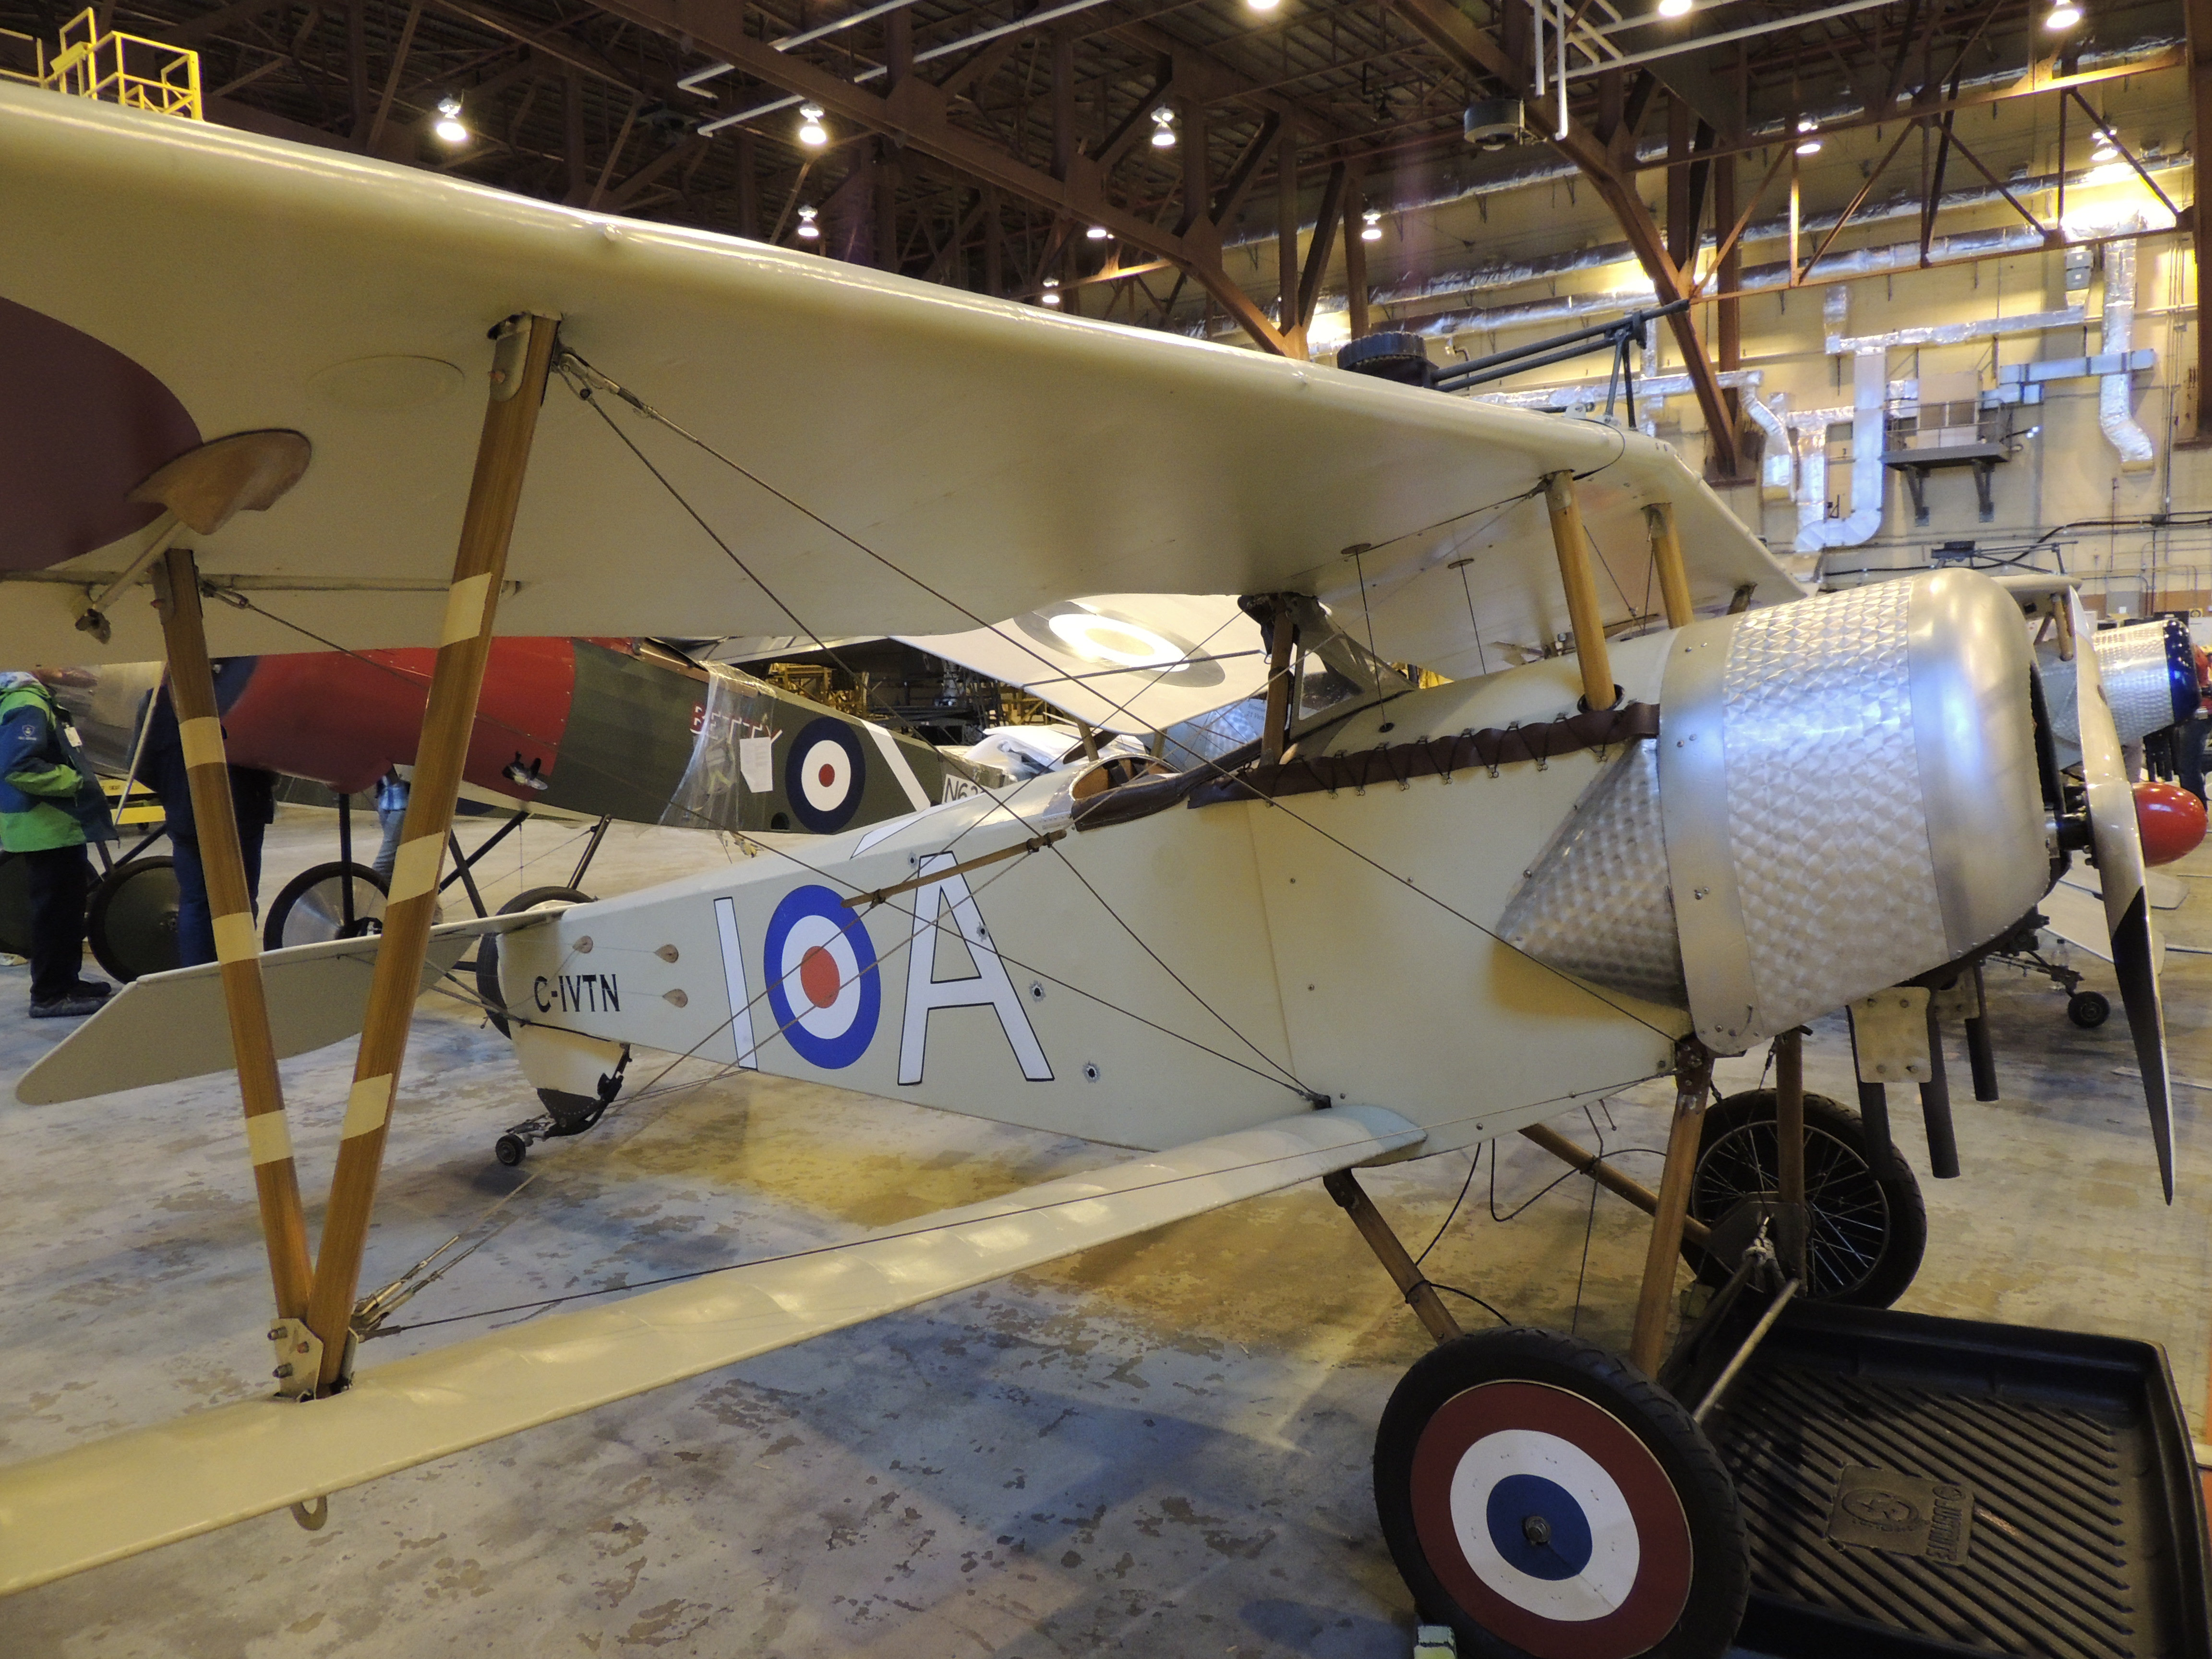 Un aéronef Nieuport XI de la Vimy Flight Association. PHOTO : Major Holly-Anne Brown